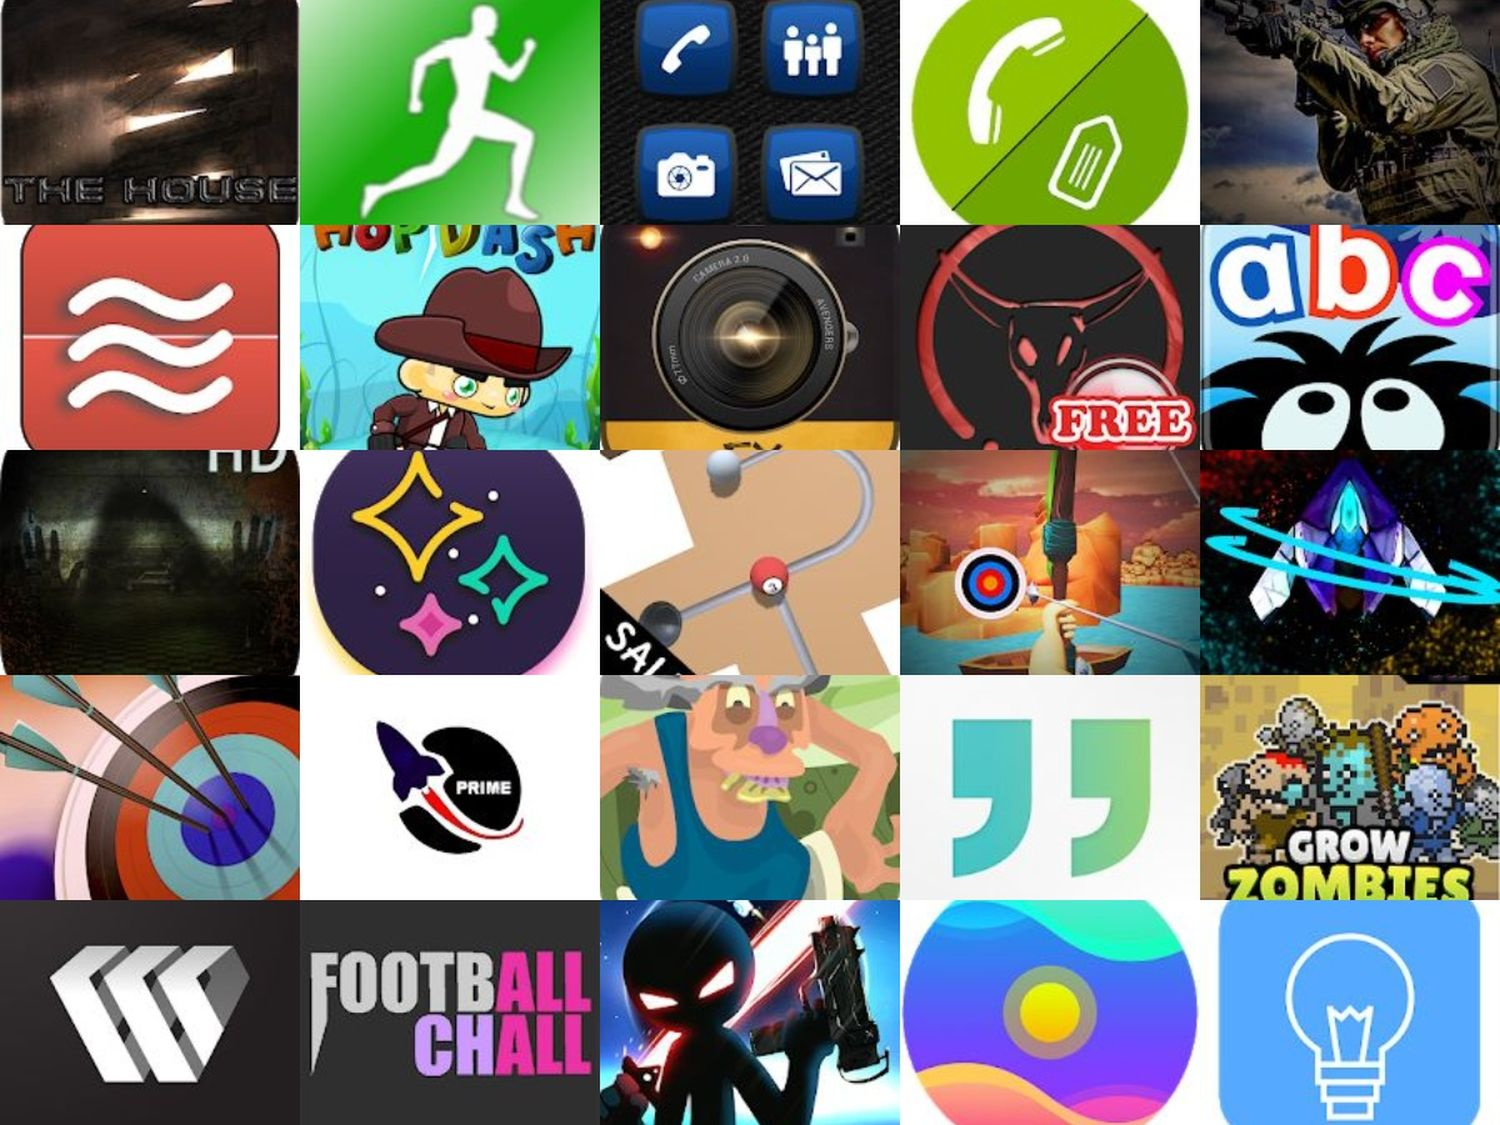 apps 11.03.2021